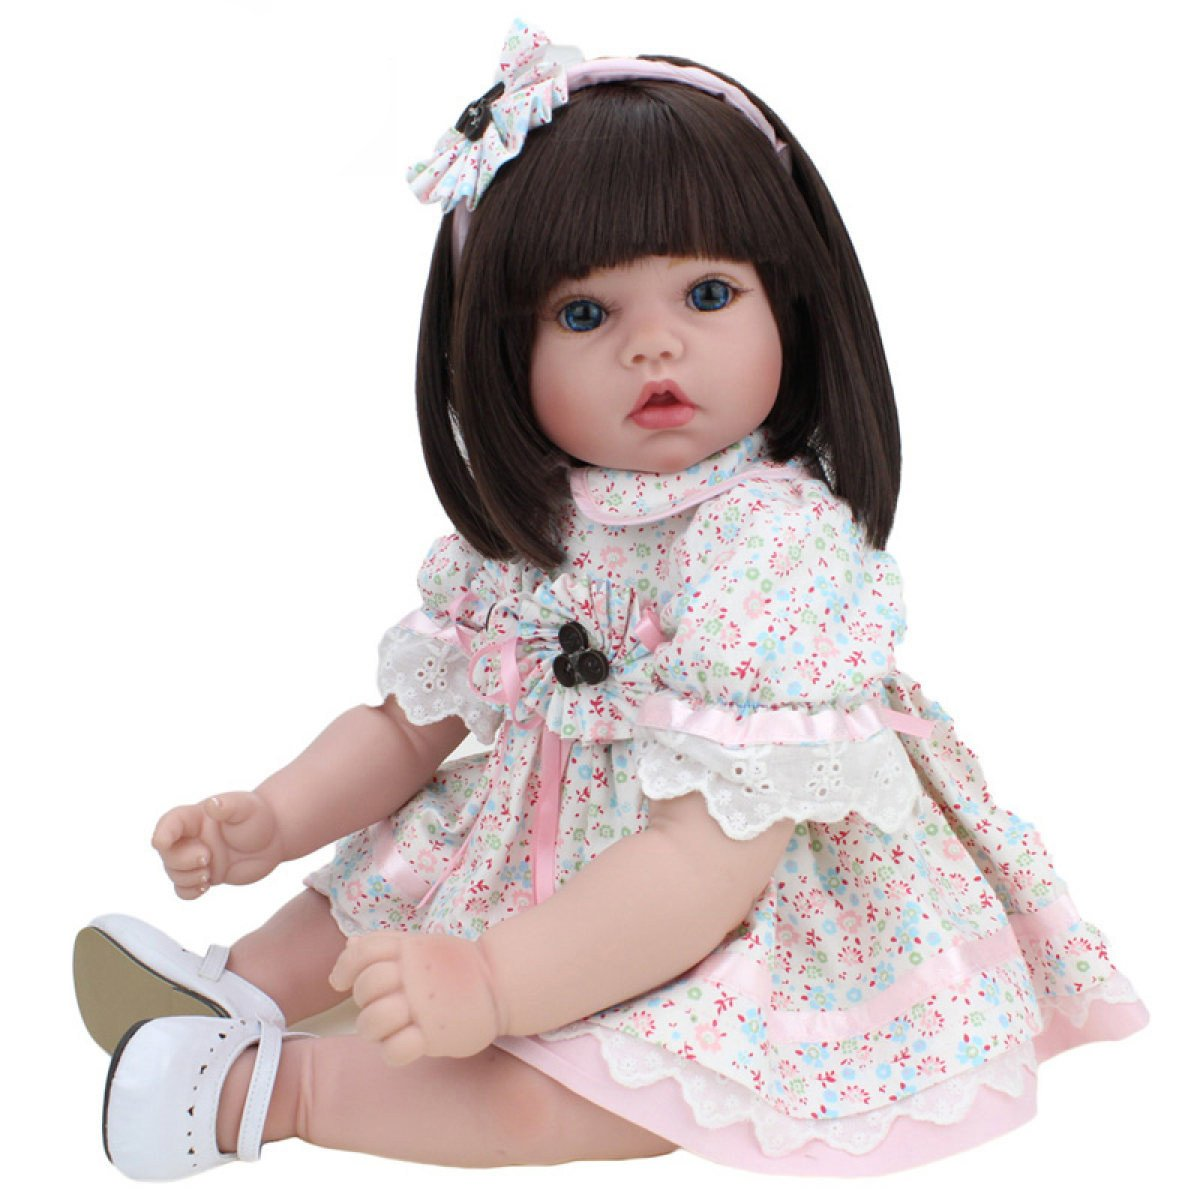 Reborn Baby Dolls Handmade Lifelike Realistic Silicone Vinyl Baby Doll Soft Simulation 22 Inch 55 Cm Eyes Open Girl Favorite Gift Yihang Processing plant